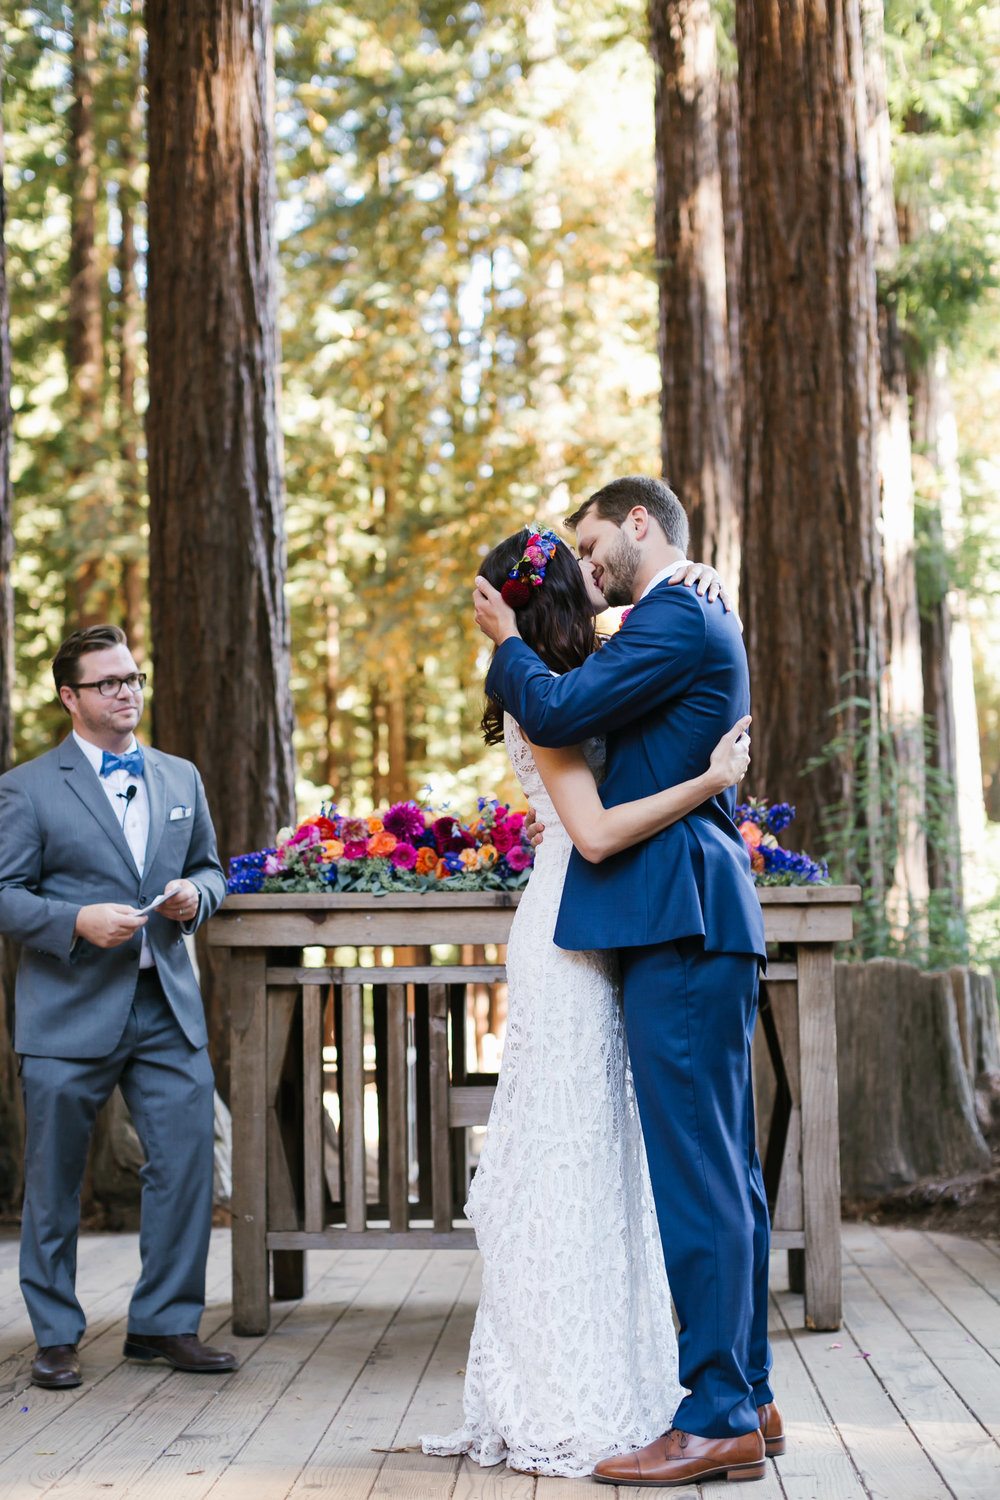 Colorful couple share their first kiss during their wedding ceremony at outdoor chapel under the trees